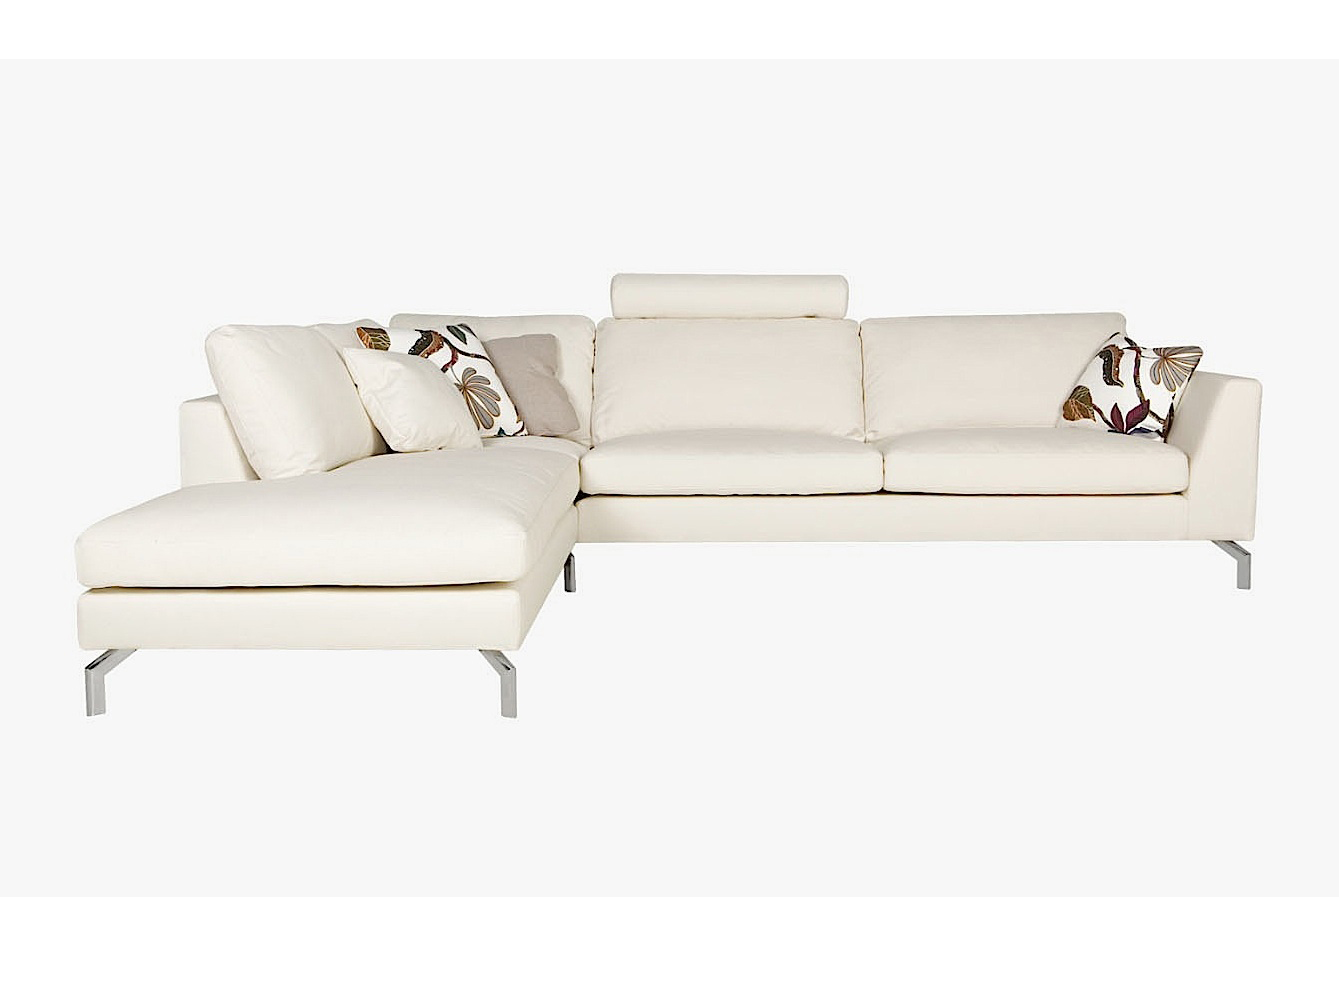 Allegra Set 1 Sofa With Chaiselongue-30185